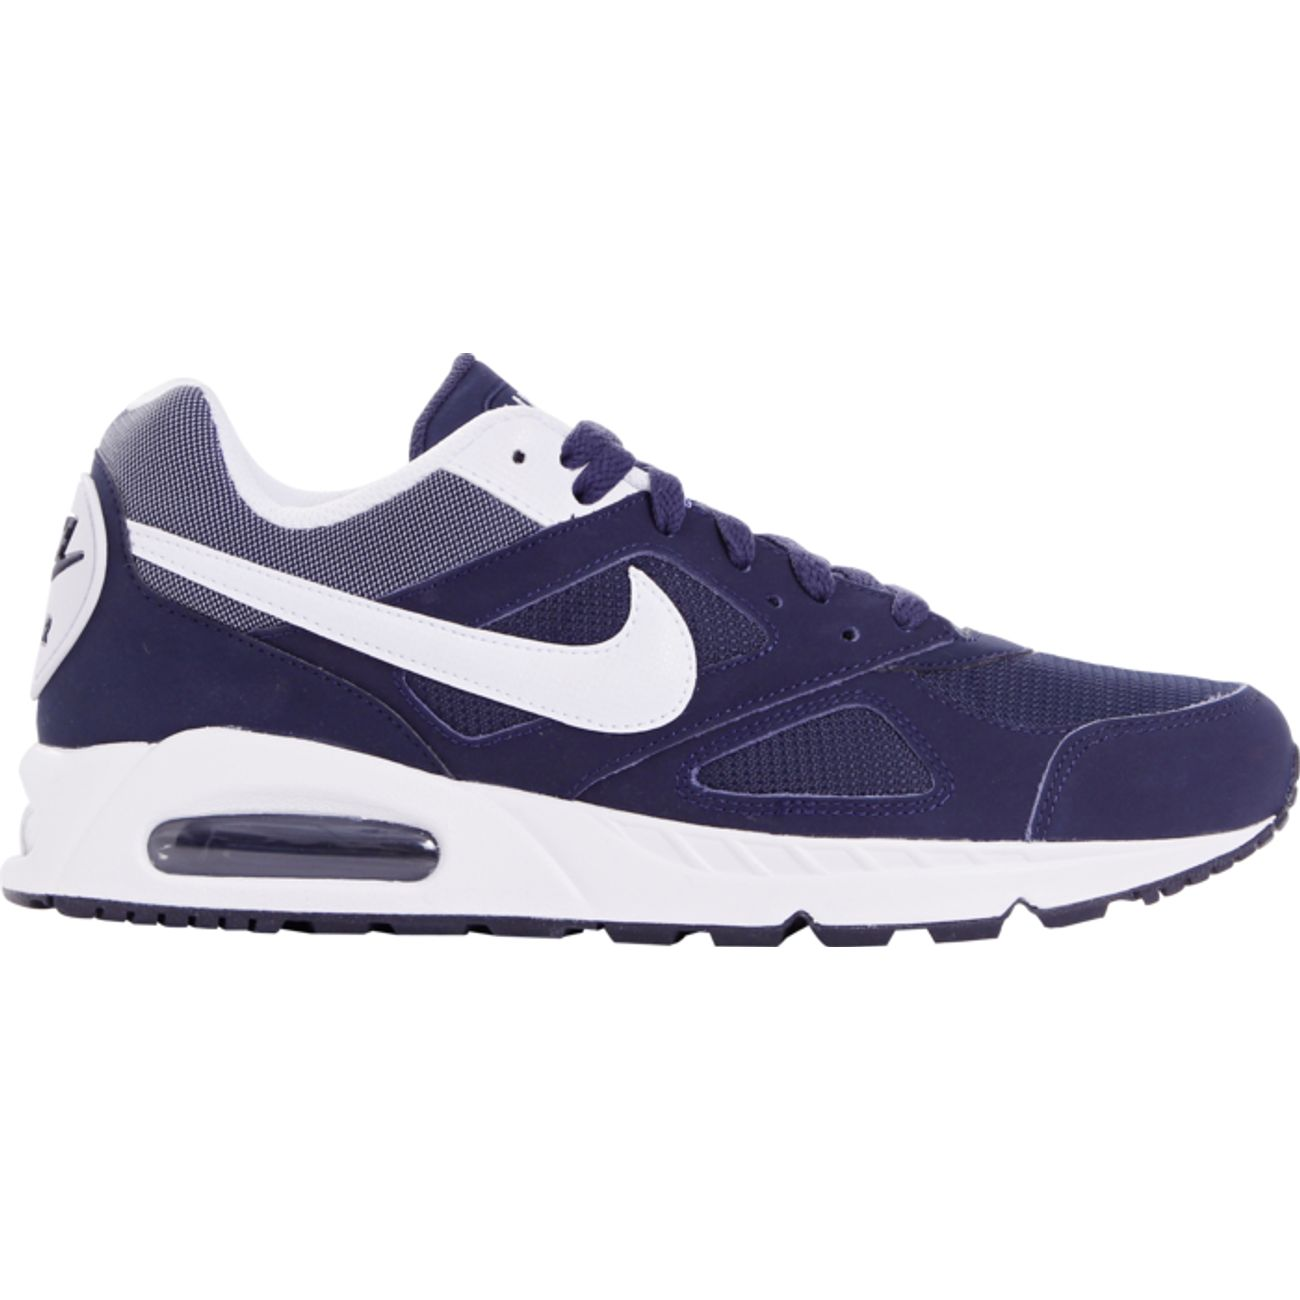 CHAUSSURES Multisport homme NIKE AIR MAX IVO